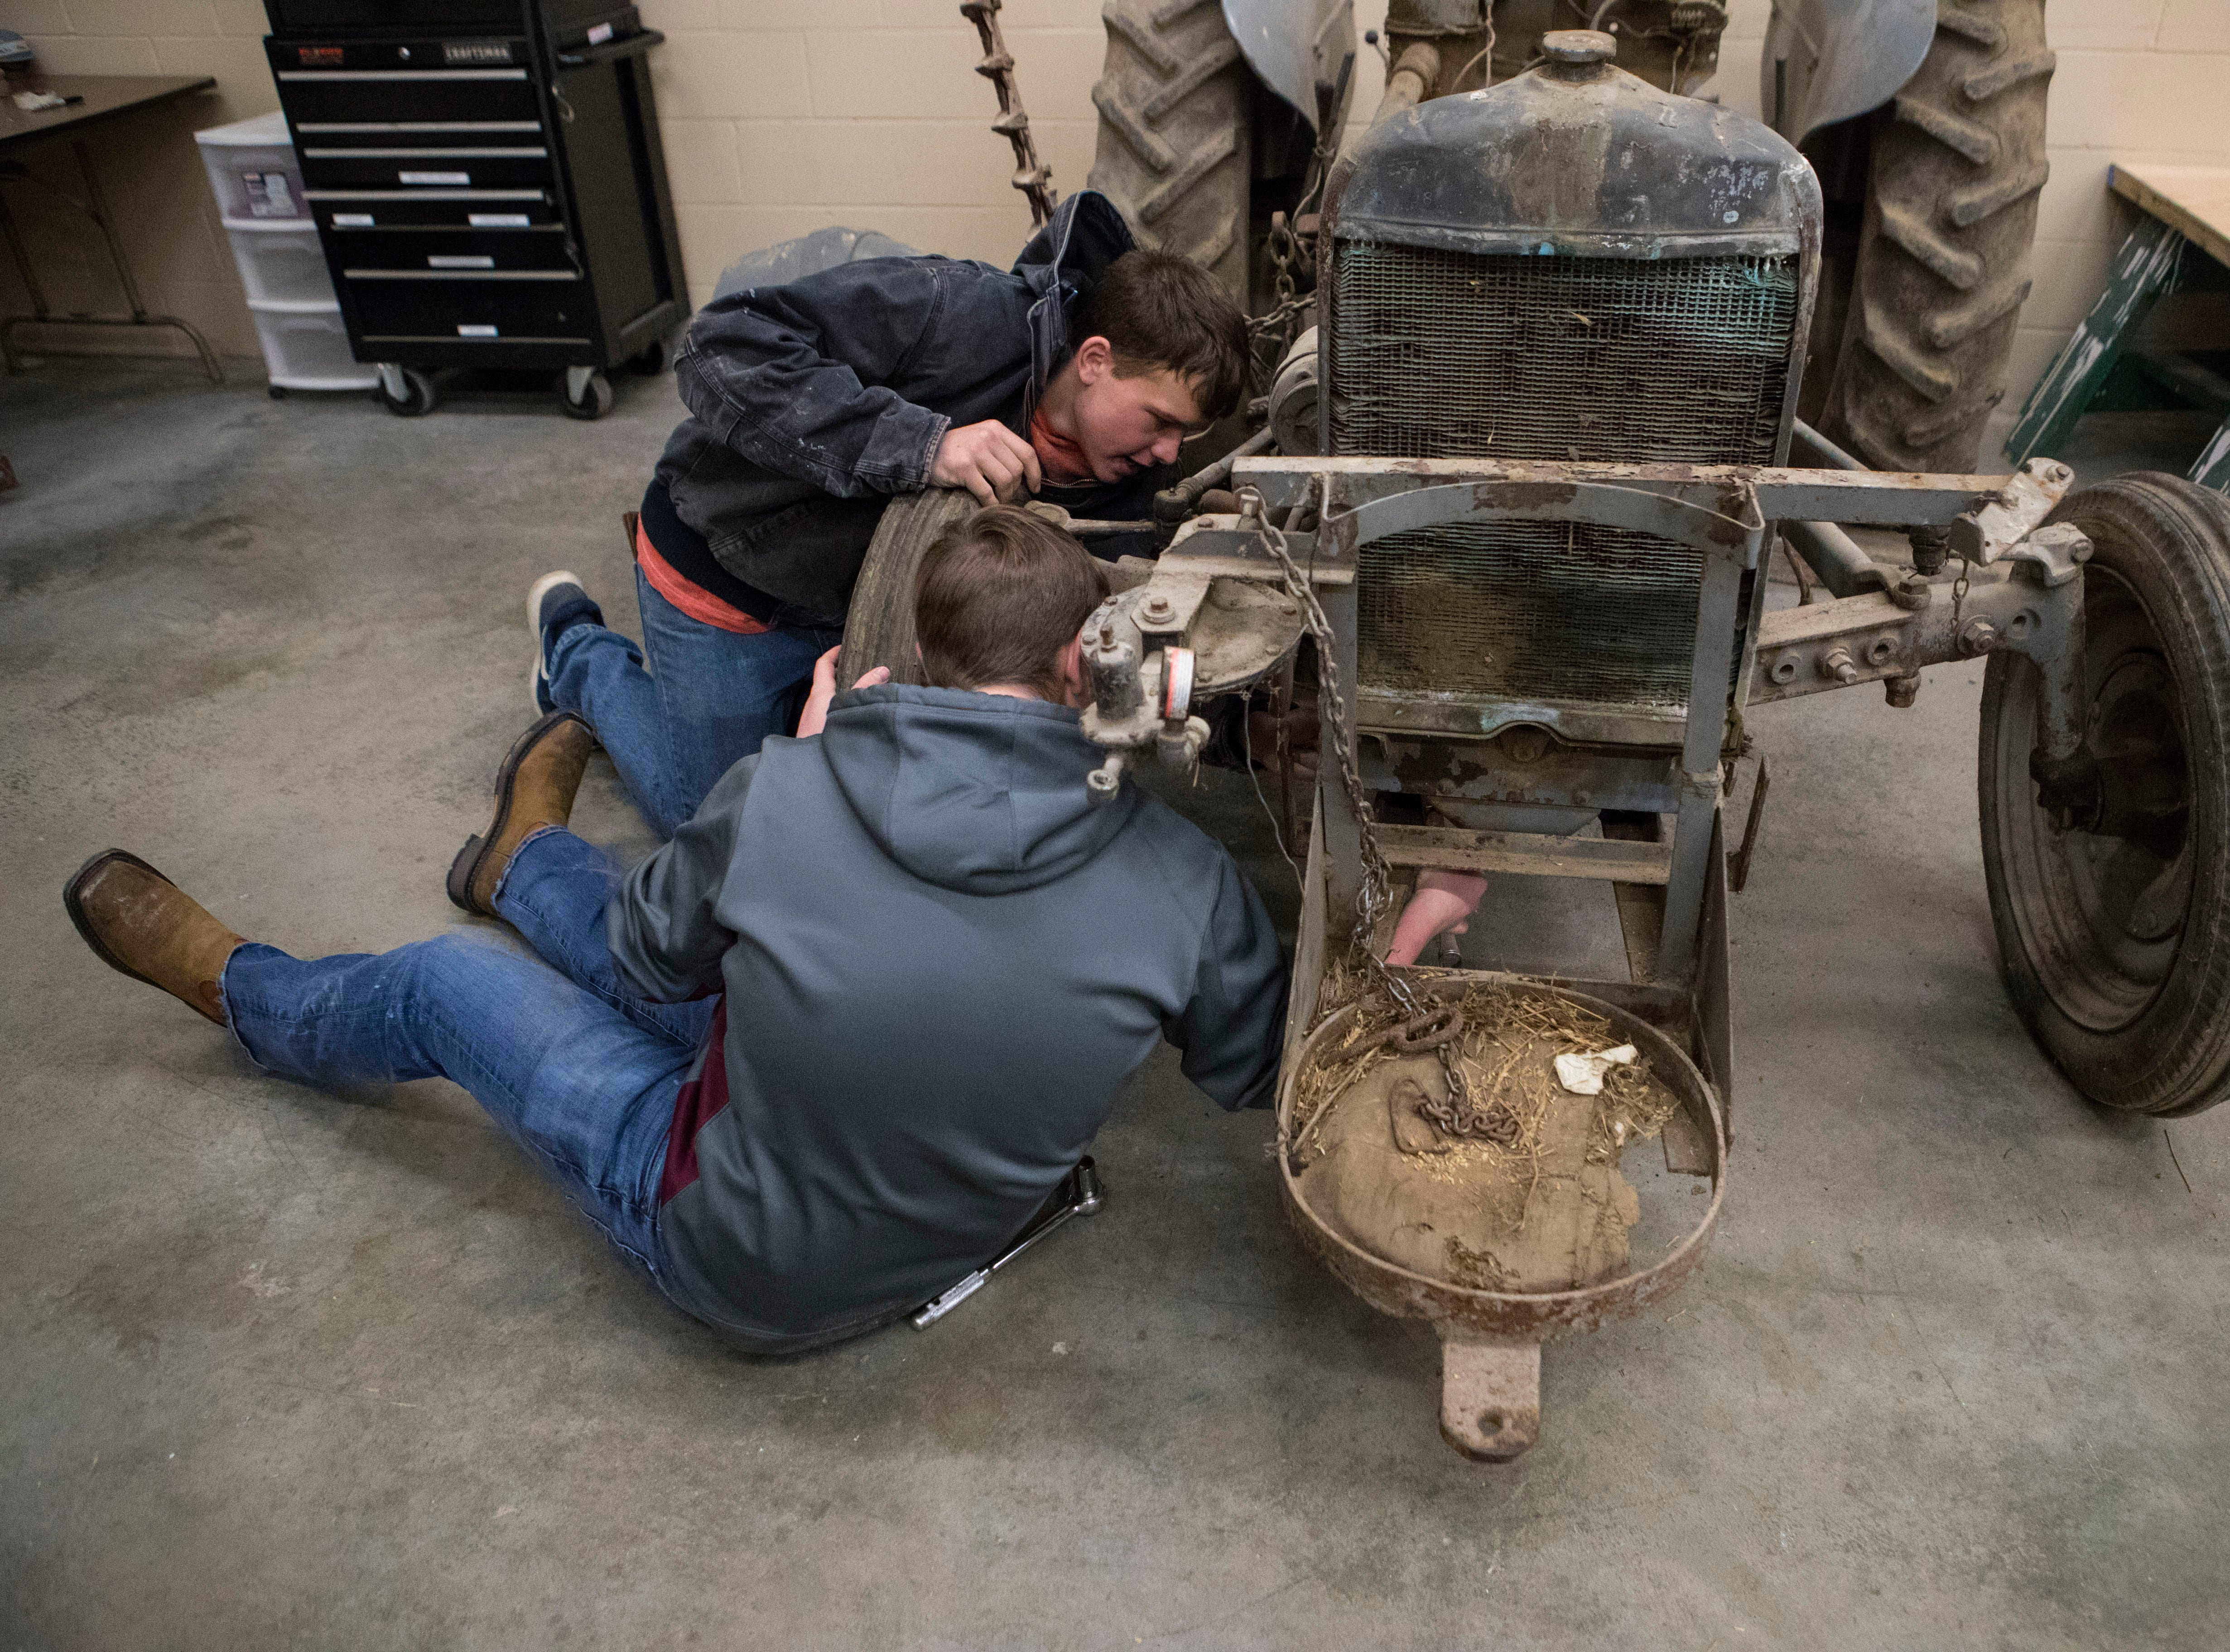 Jackson Klemme, 18, and Mitchell Healy, 18, repair a tractor during agriculture mechanics class at Harrisburg High School, Wednesday, Jan. 23, 2019 in Harrisburg, S.D.